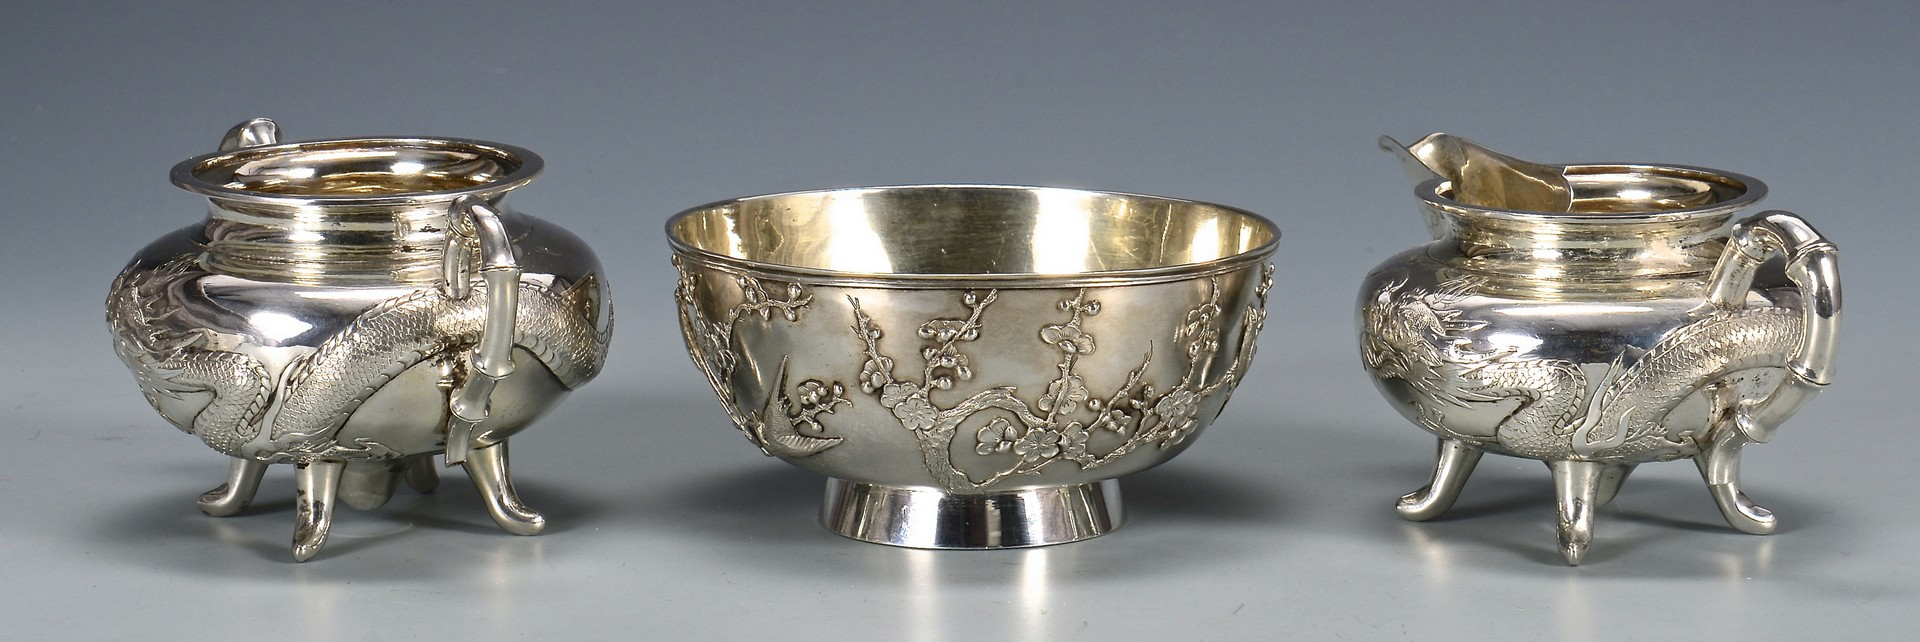 Lot 34: Chinese Export Silver Tea Service and Tray